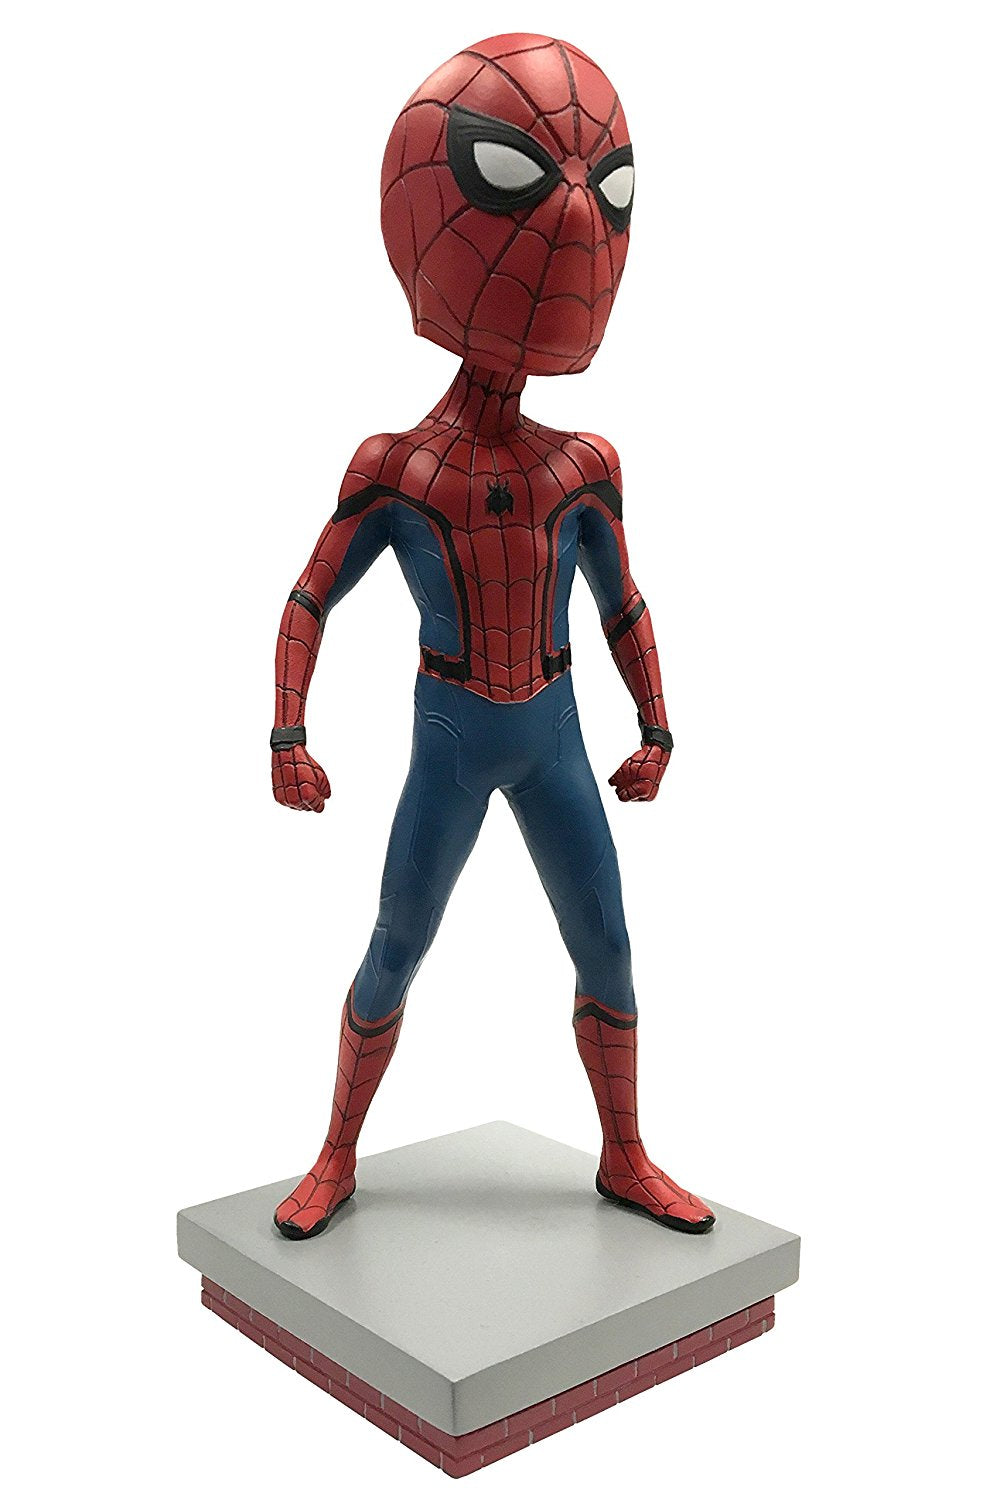 NECA - Spider-Man: Homecoming: Head Knocker - Spider-Man - Collectors Row Inc.